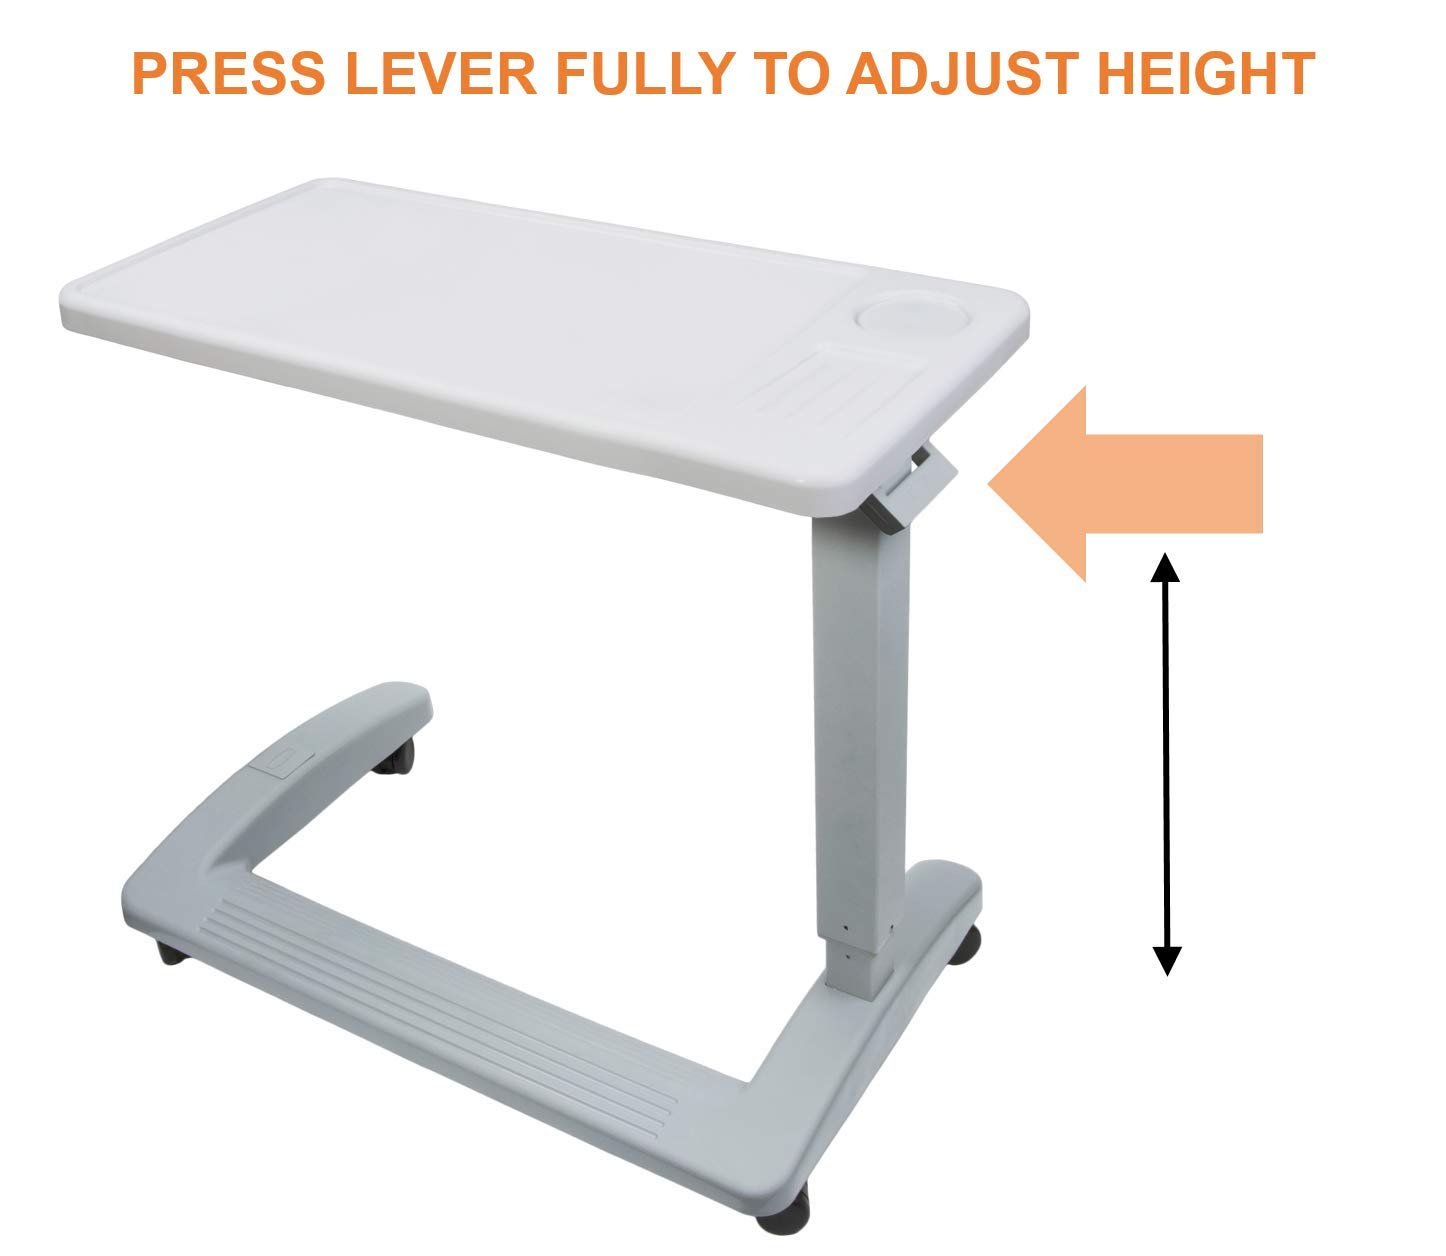 Vaunn Medical Deluxe Adjustable Overbed Bedside Table with Wheels (Hospital and Home Use) by Vaunn (Image #8)